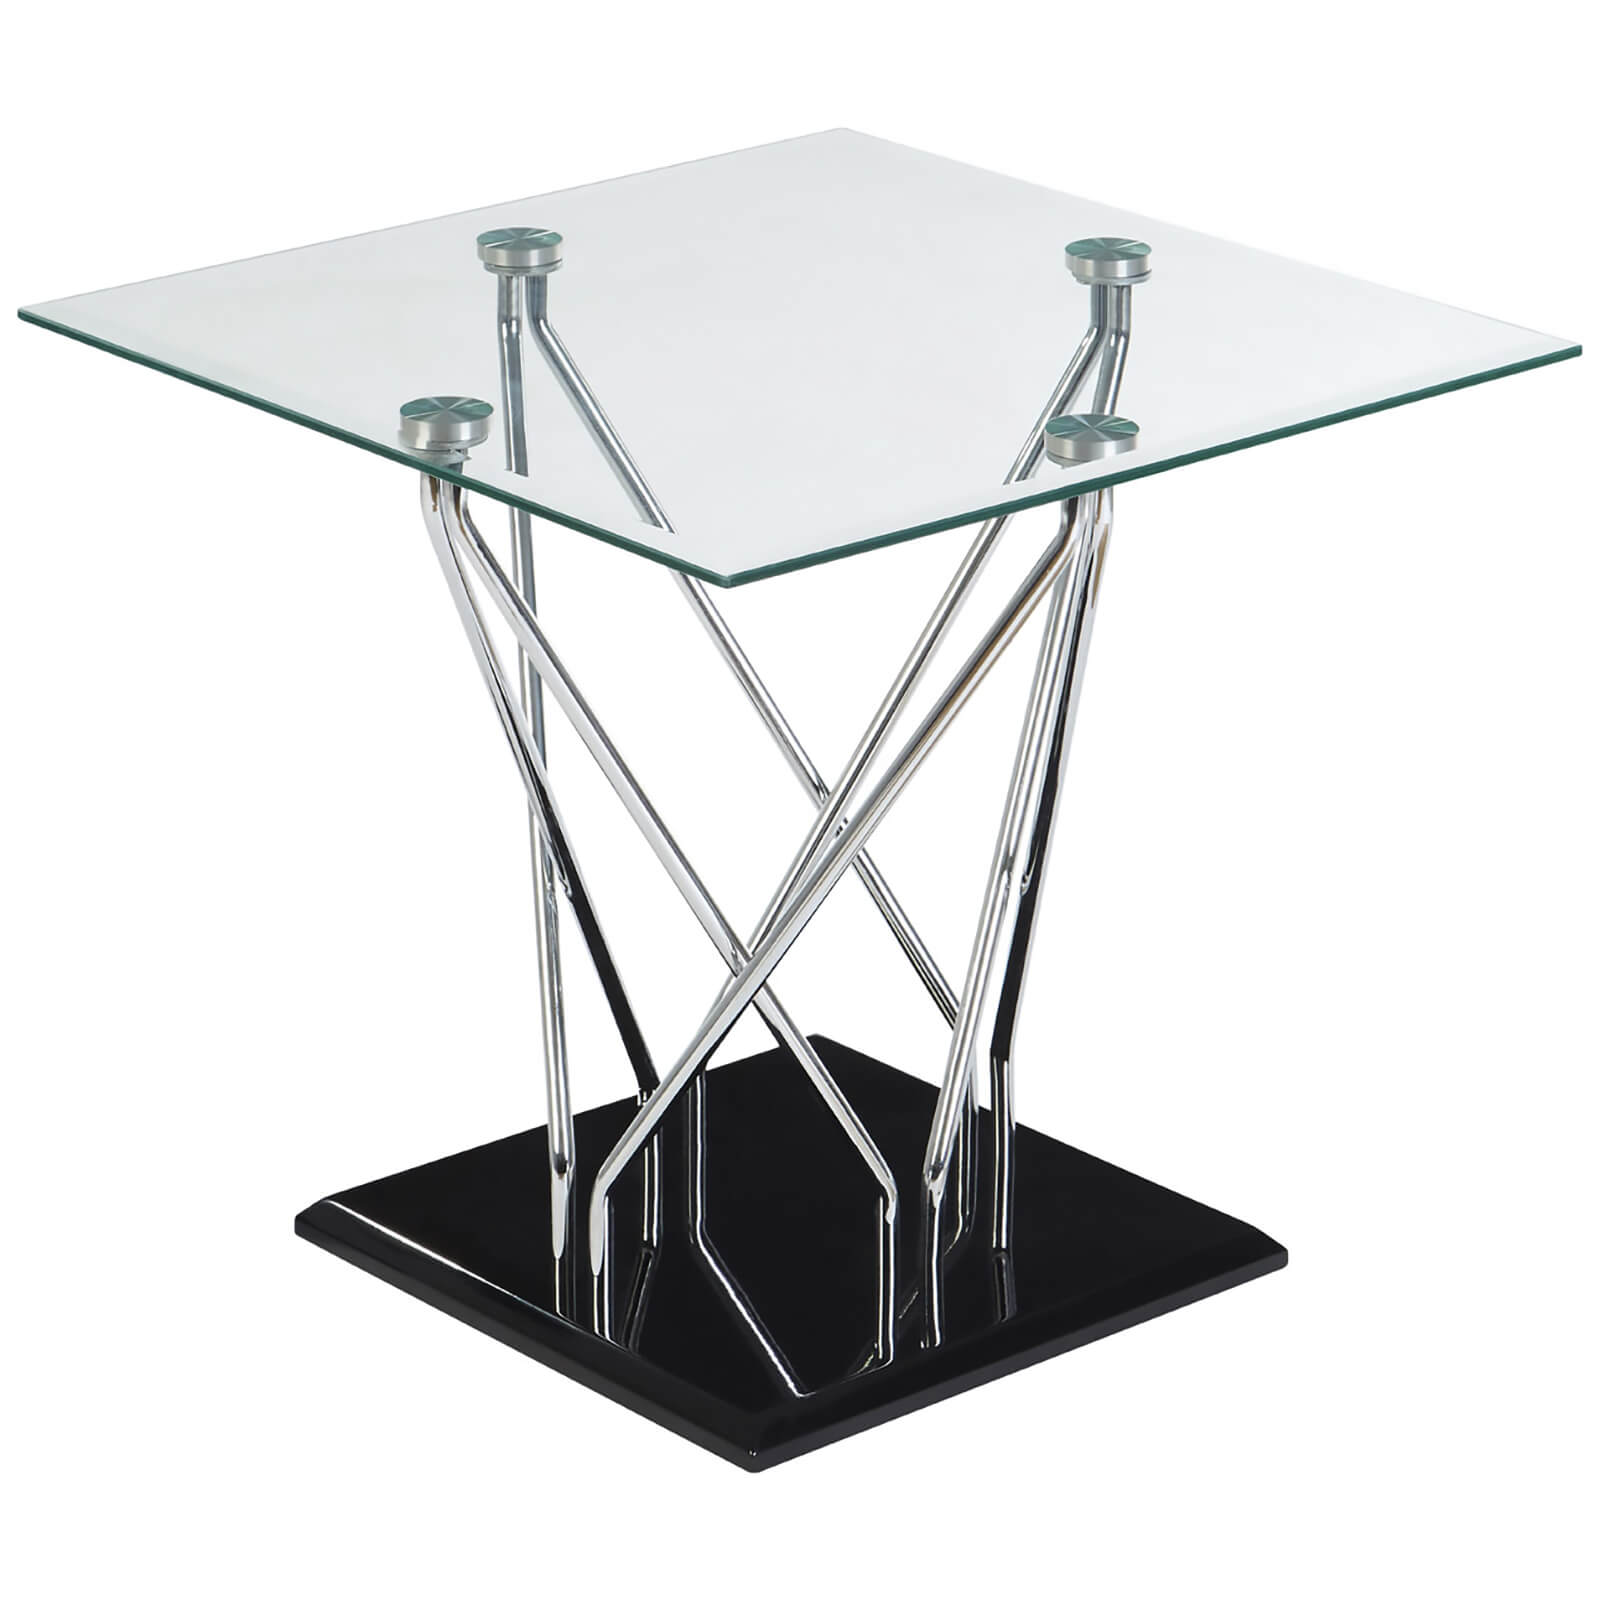 Fifty Five South Halo Tempered Glass Side Table - Chrome/Black